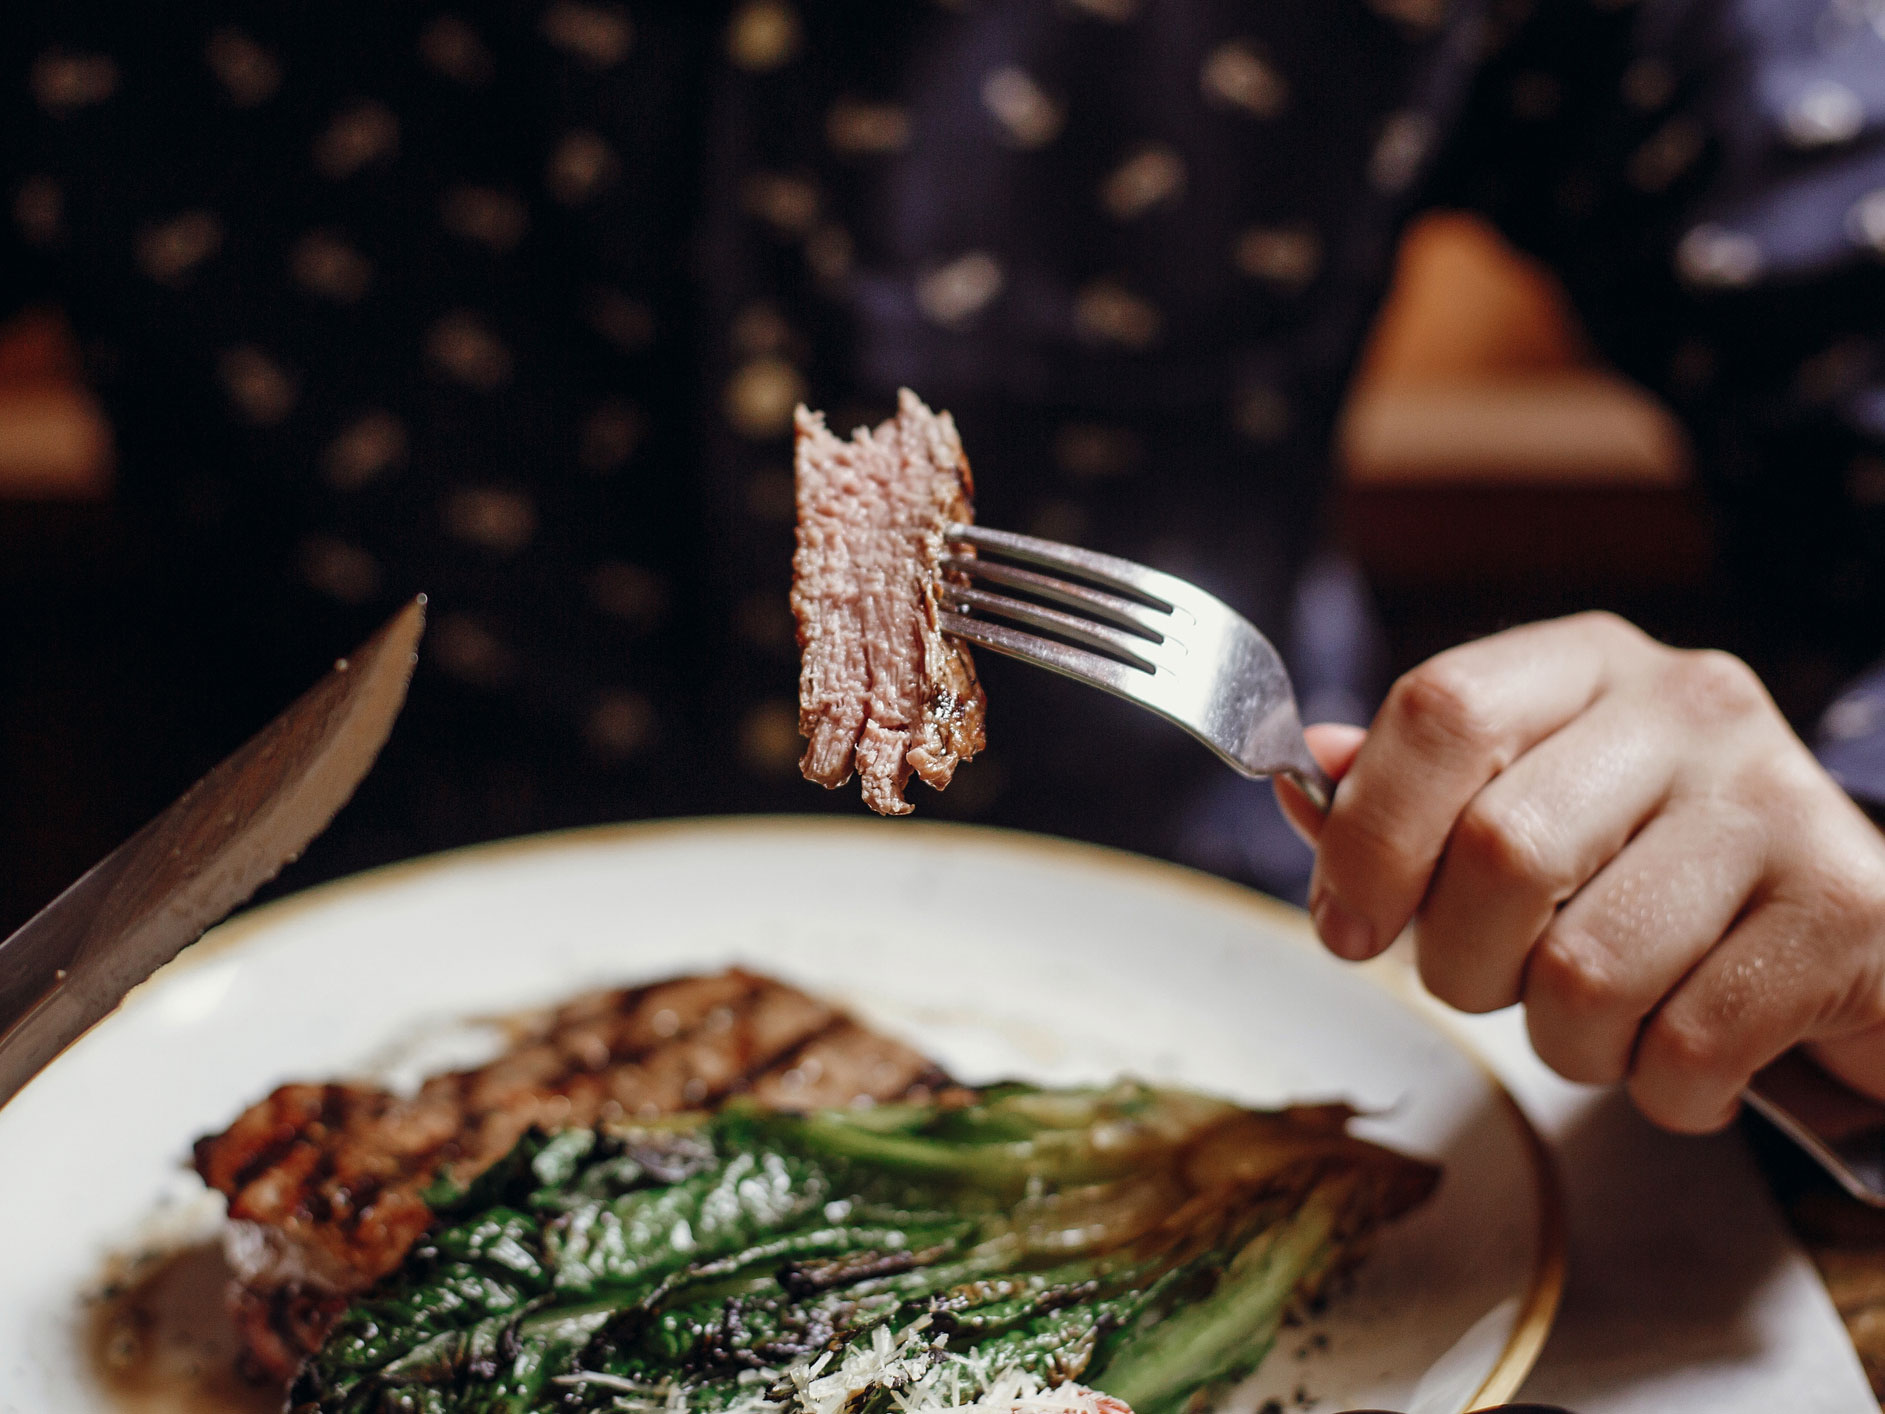 Red meat may be part of a healthy diet that reduces MS risk